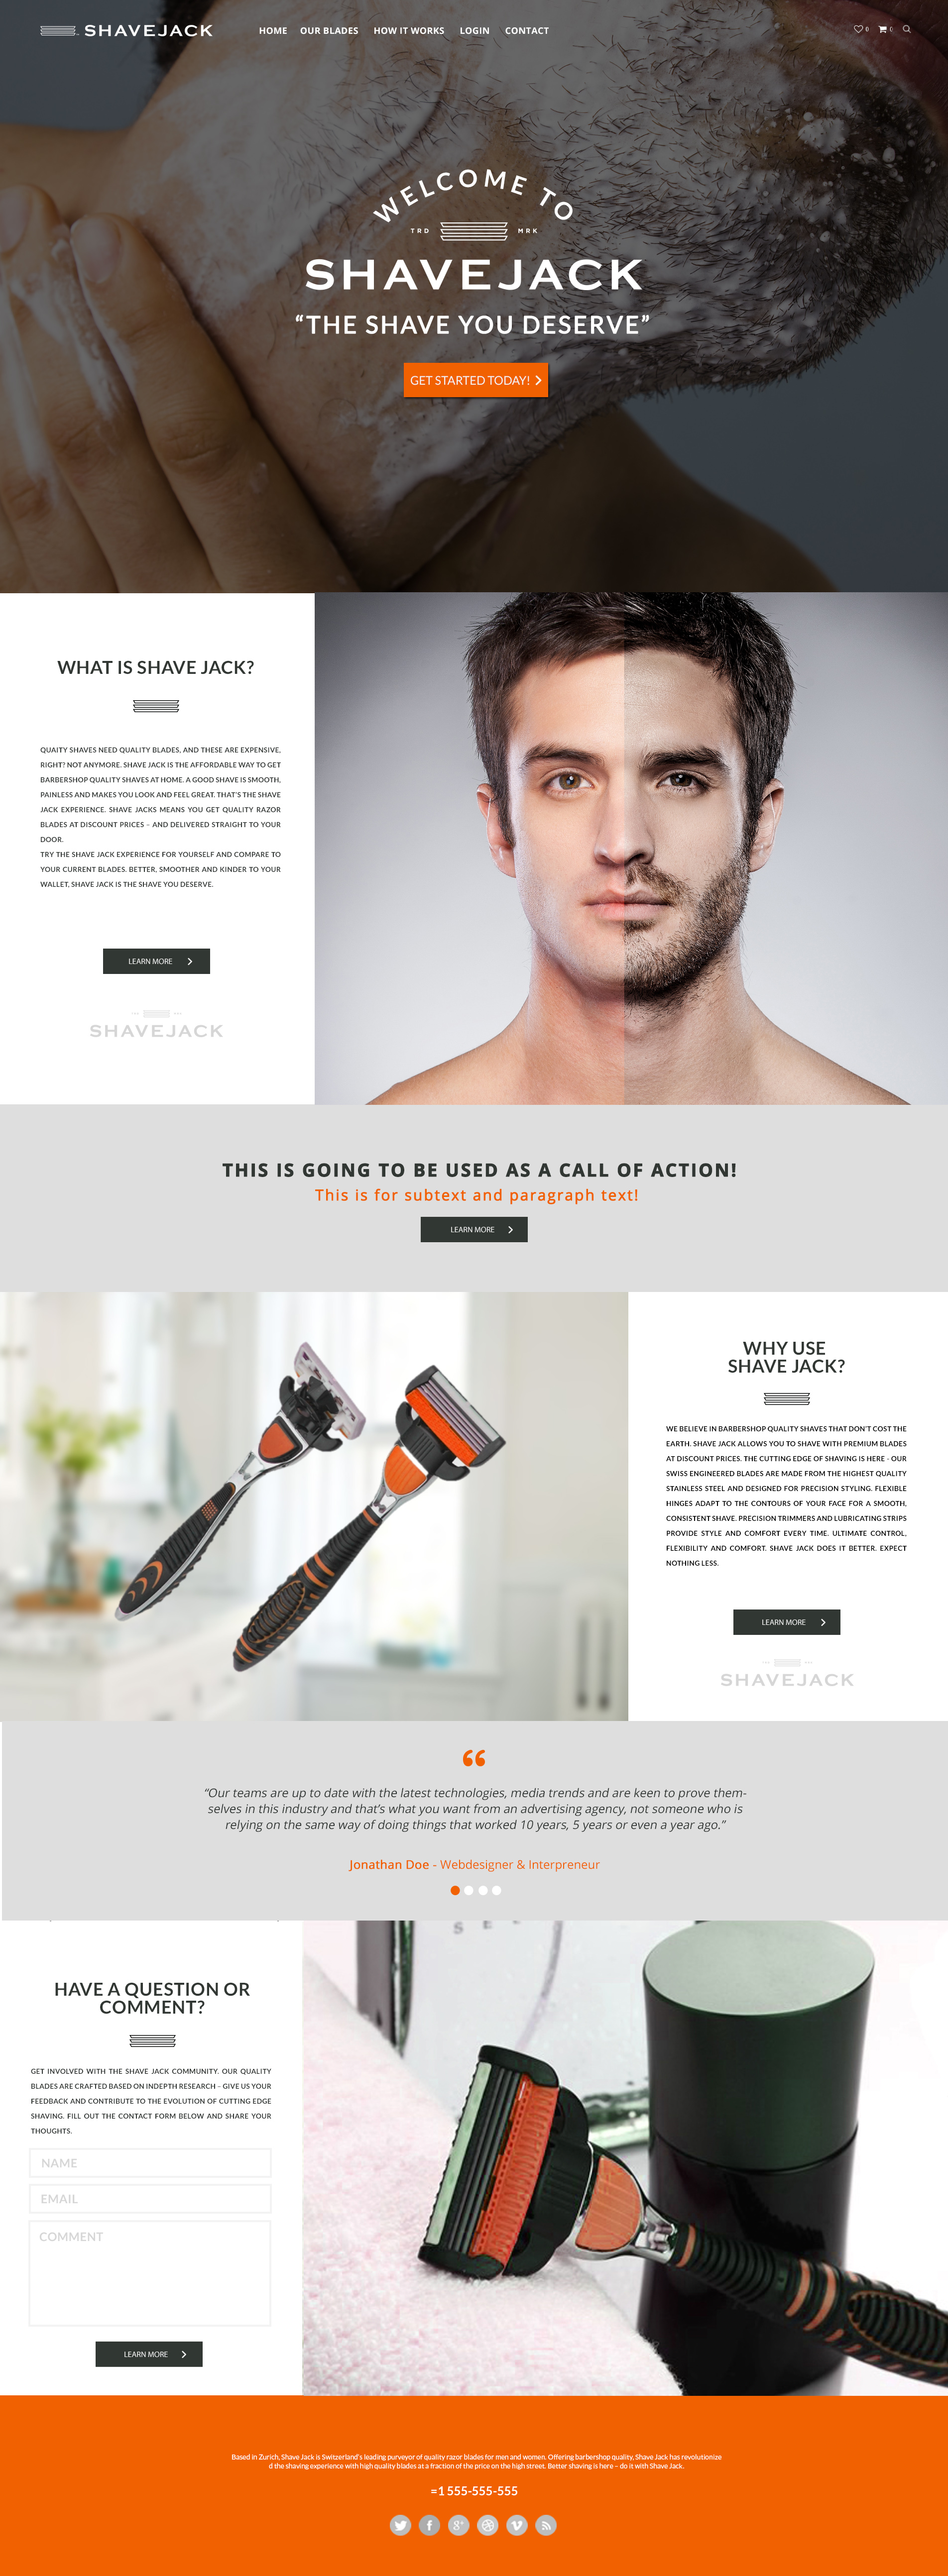 Website design for Shavejack, a monthly subscription blade service